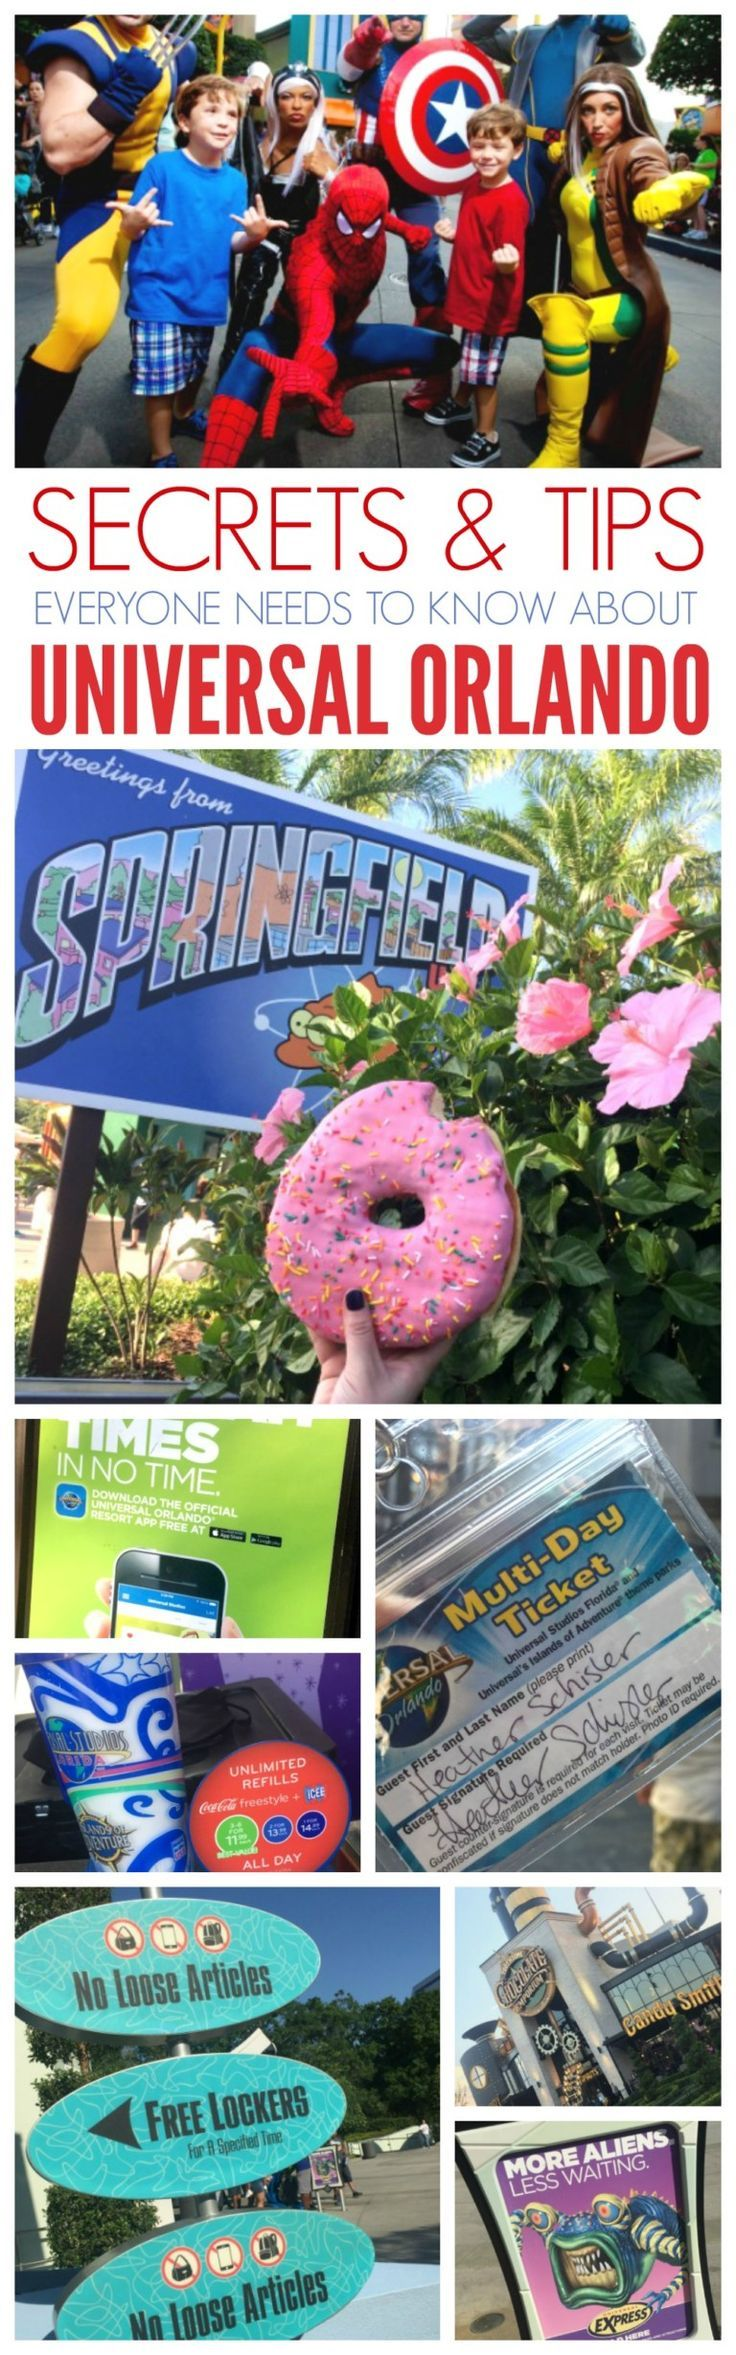 12 Universal Orlando Secrets & Tips for getting Free Express Passes, Free Lockers, Transportation, Shorter Lines, The Best Bargains on Food and more!